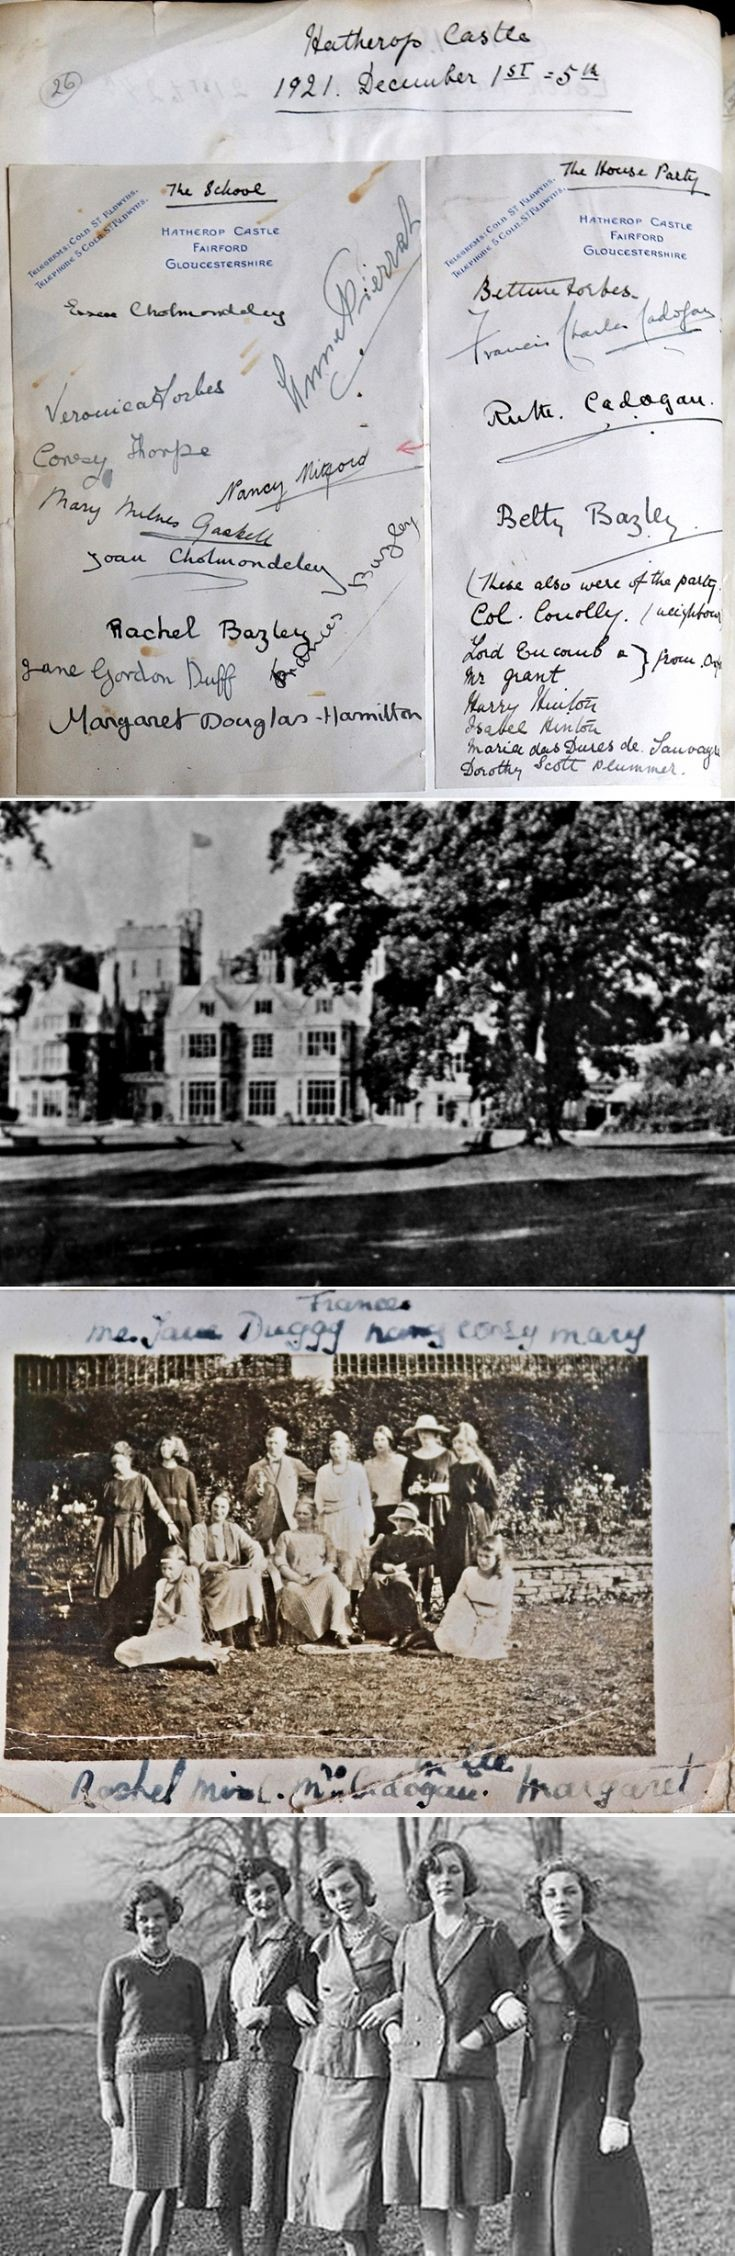 17 Bettine at School at Hatherop Castle 1921